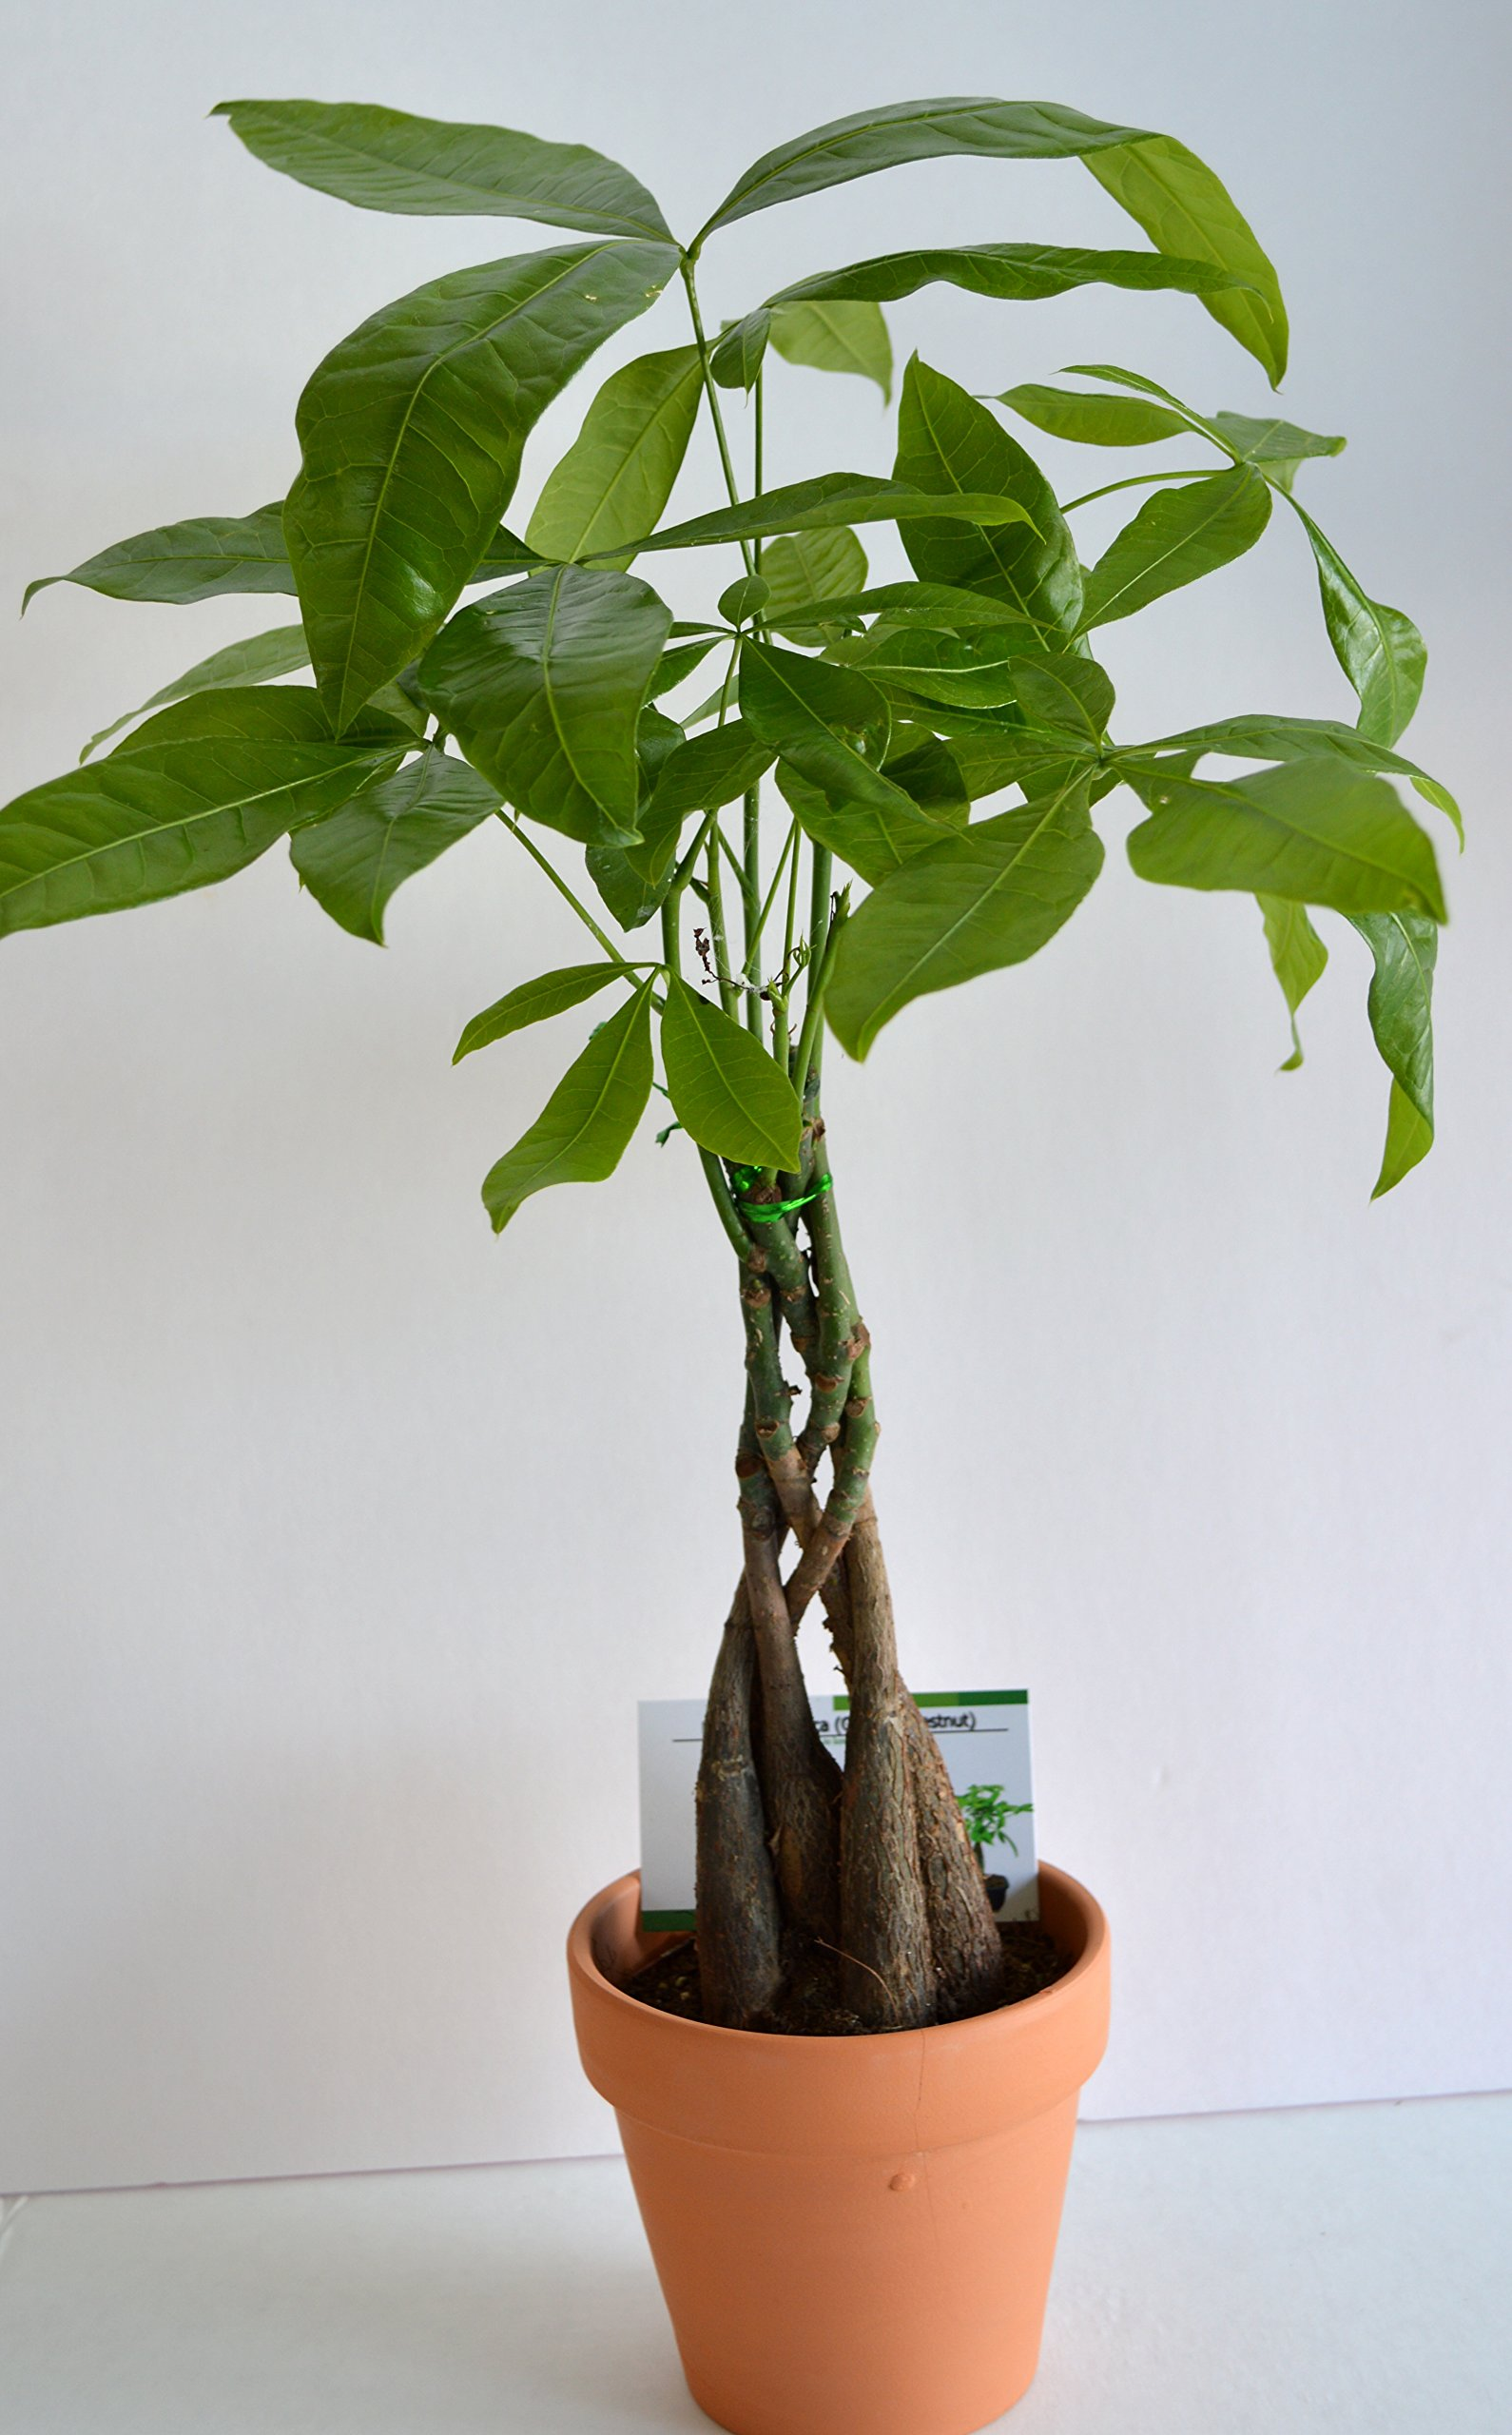 JM Bamboo 5 Money Tree Plants Braided into 1 Tree -Pachira-4'' clay pot for better growth between 10-12 inches tall